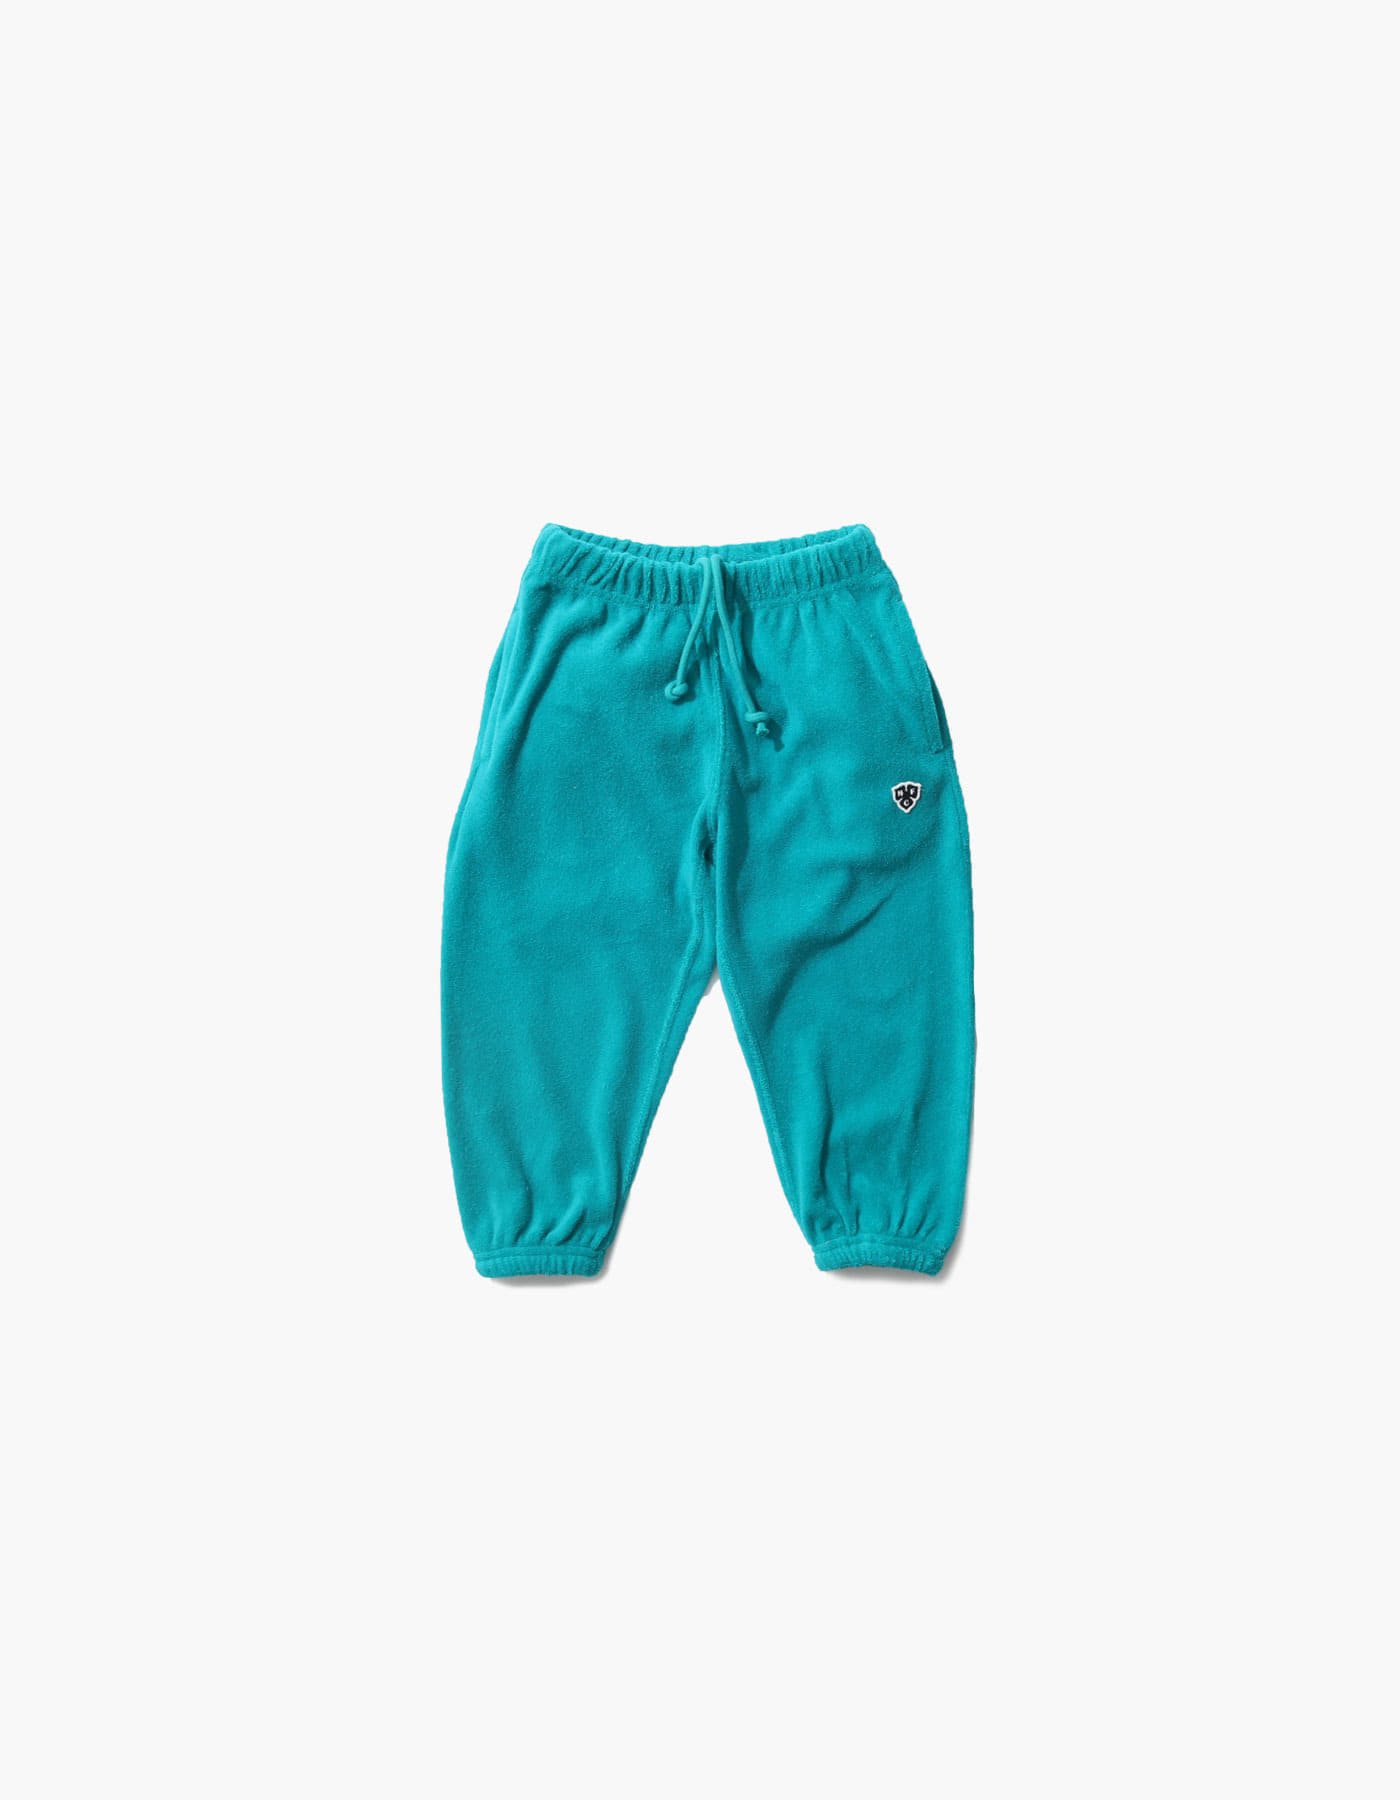 HFC CREST KIDS TOWEL JOGGER PANTS / BLUE GREEN